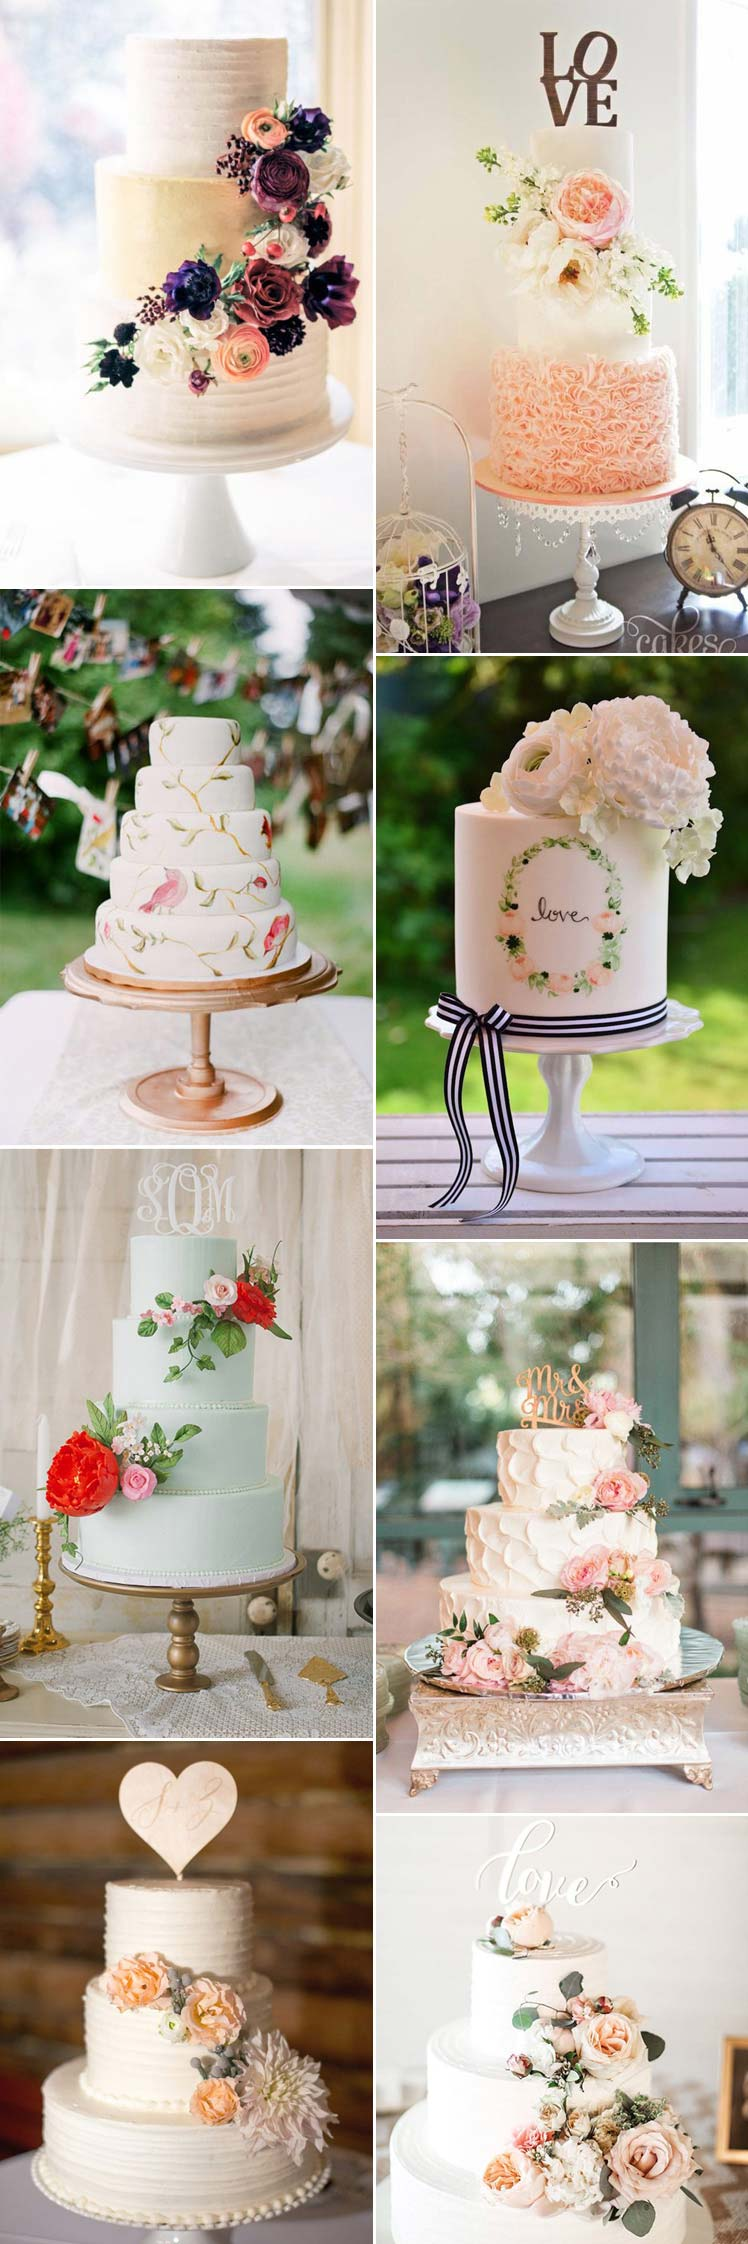 beautiful valentine wedding cakes